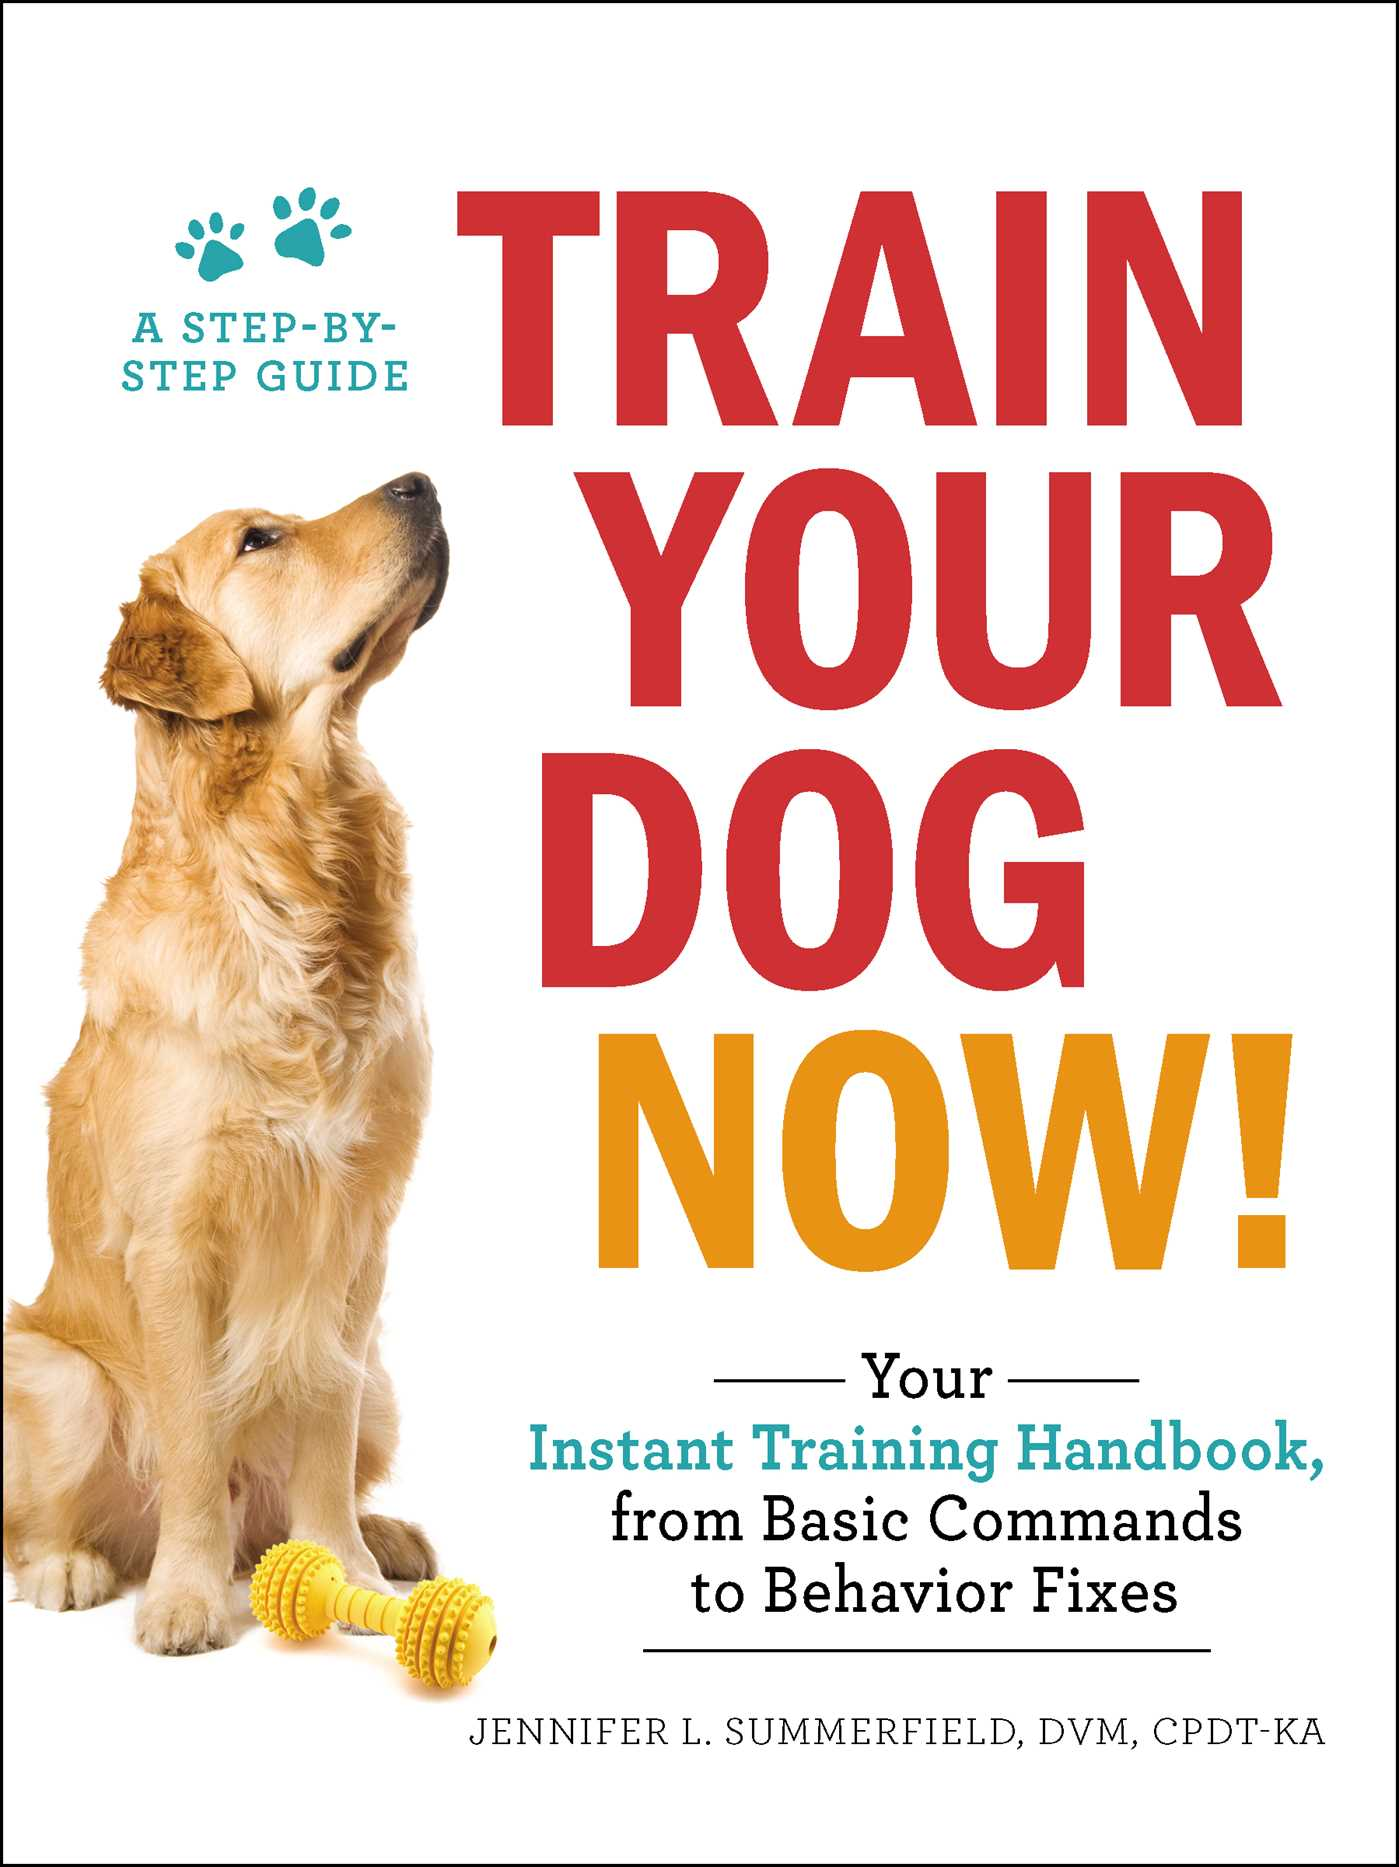 Train your dog now 9781507206973 hr